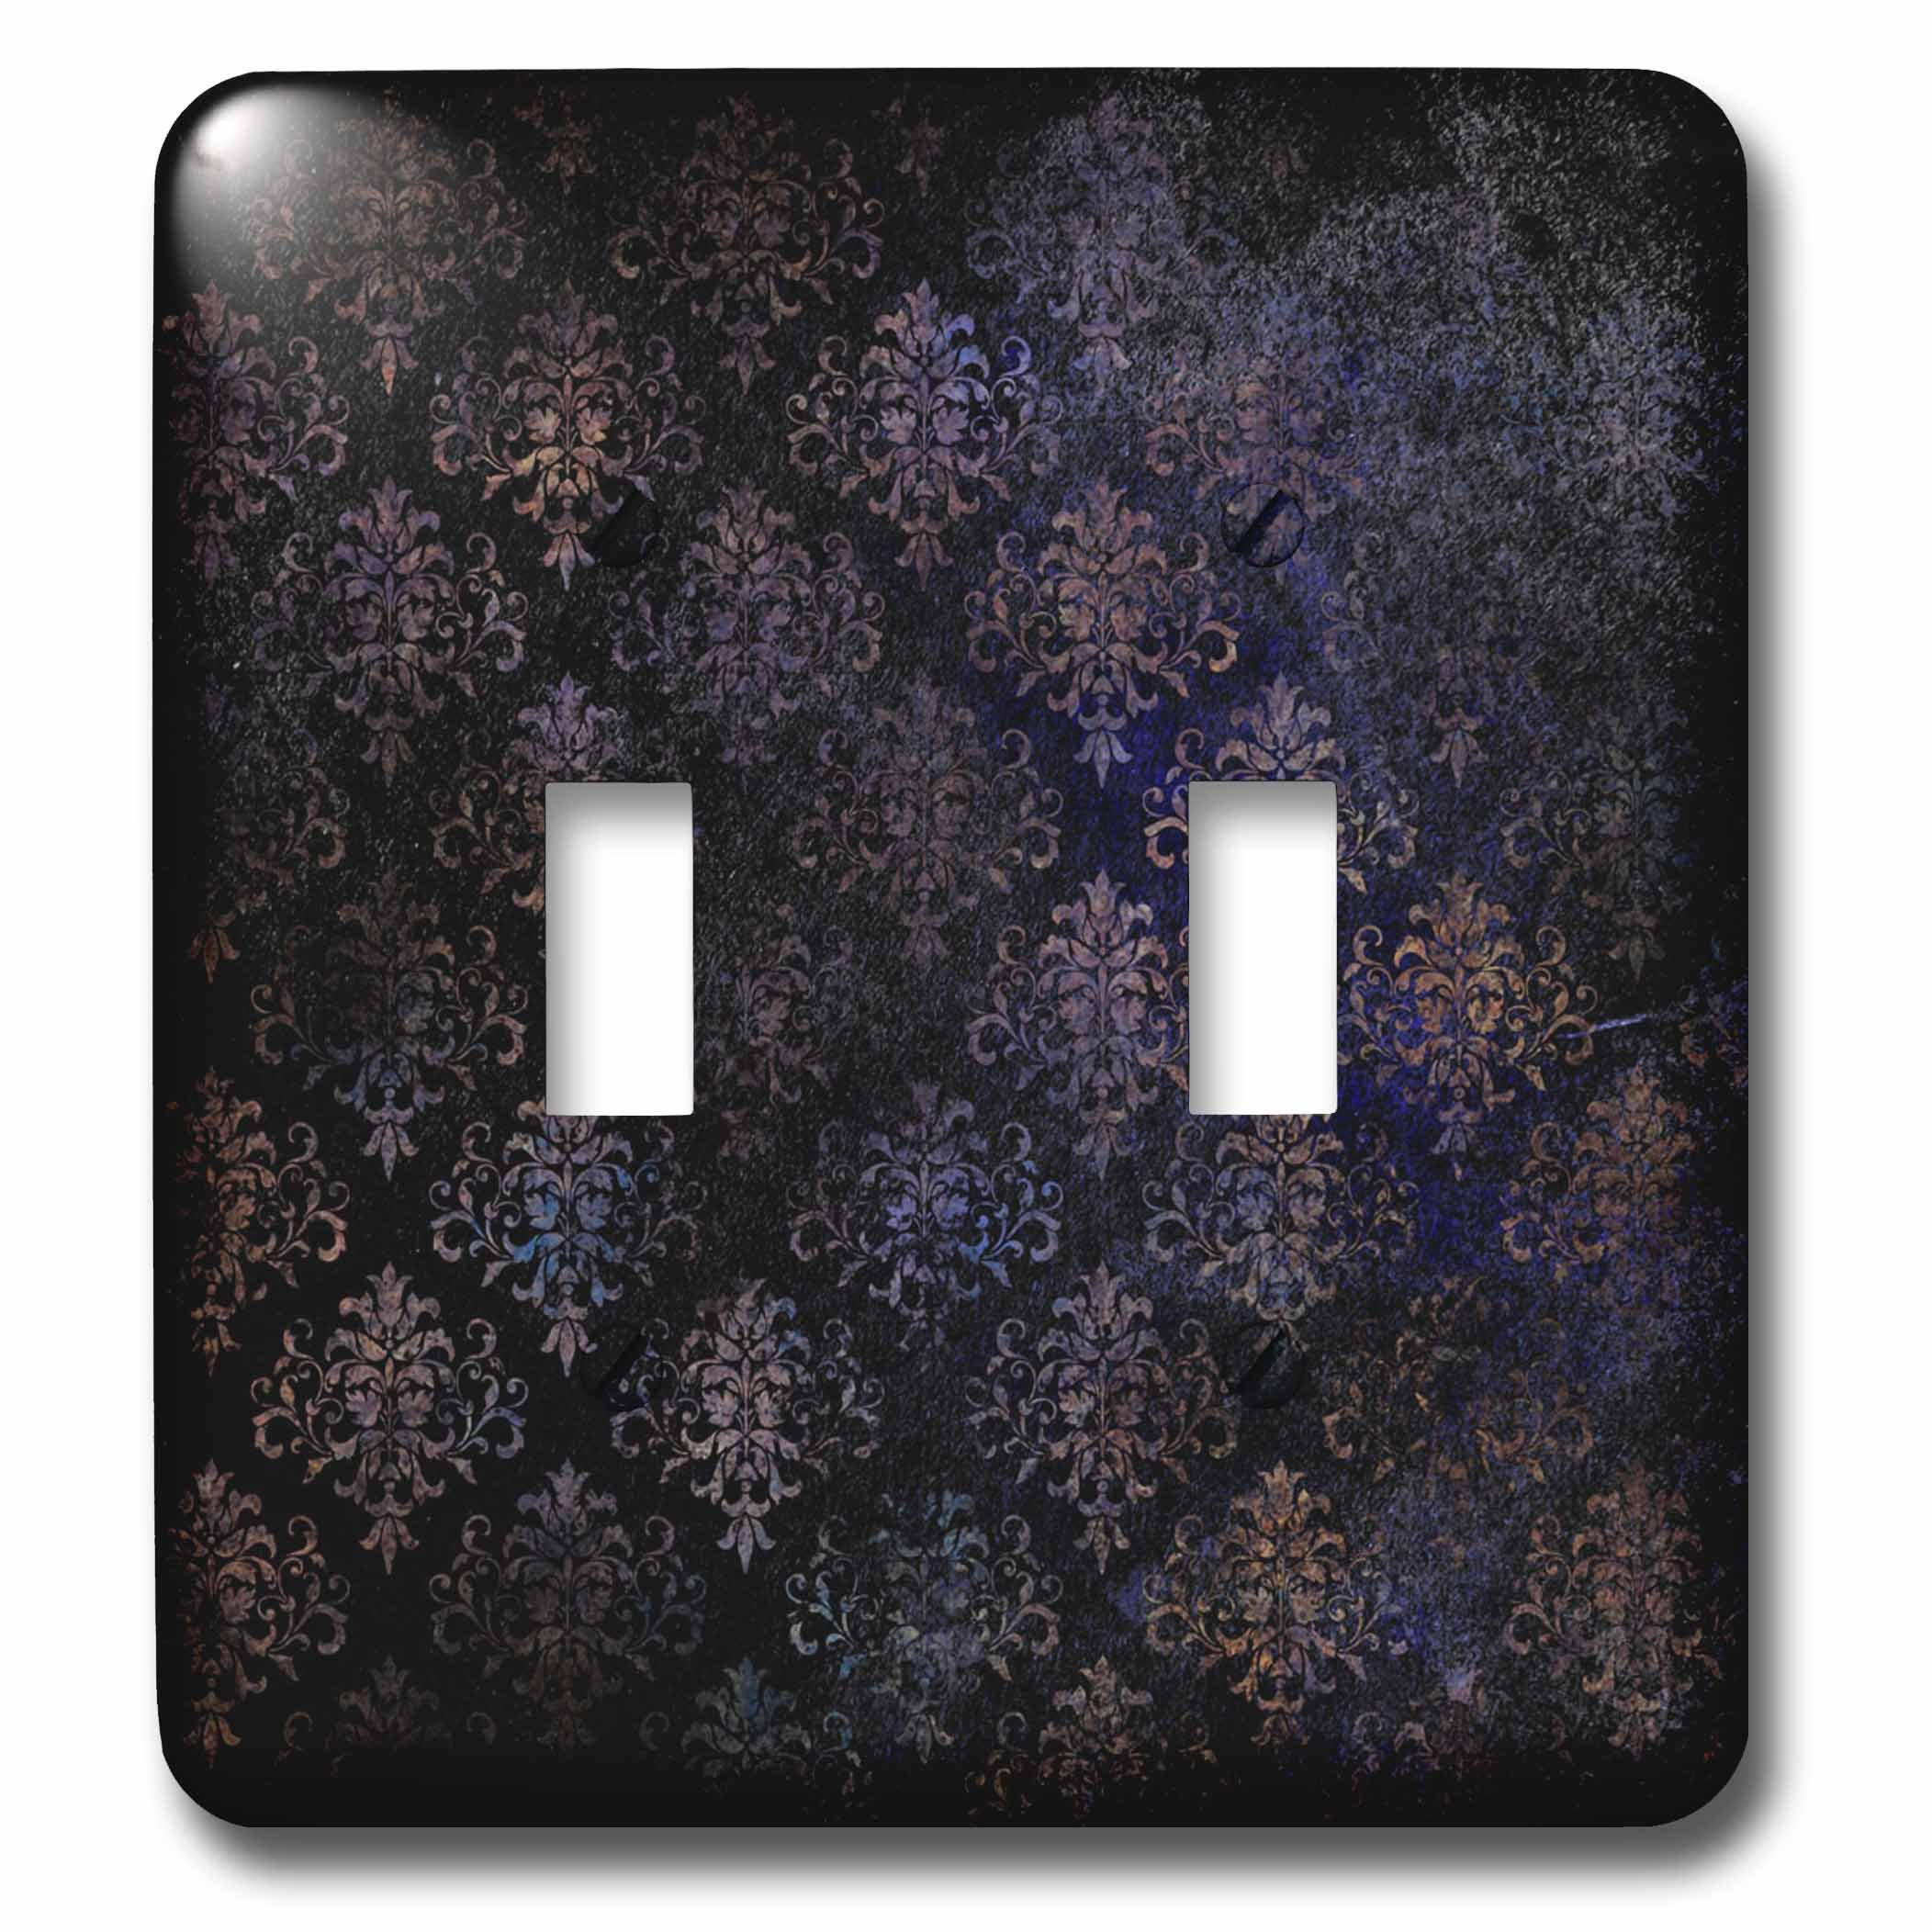 3dRose Anne Marie Baugh - Patterns - Pretty Black and Blue Grunge Diamond Damask Pattern - Light Switch Covers - double toggle switch (lsp_283181_2)